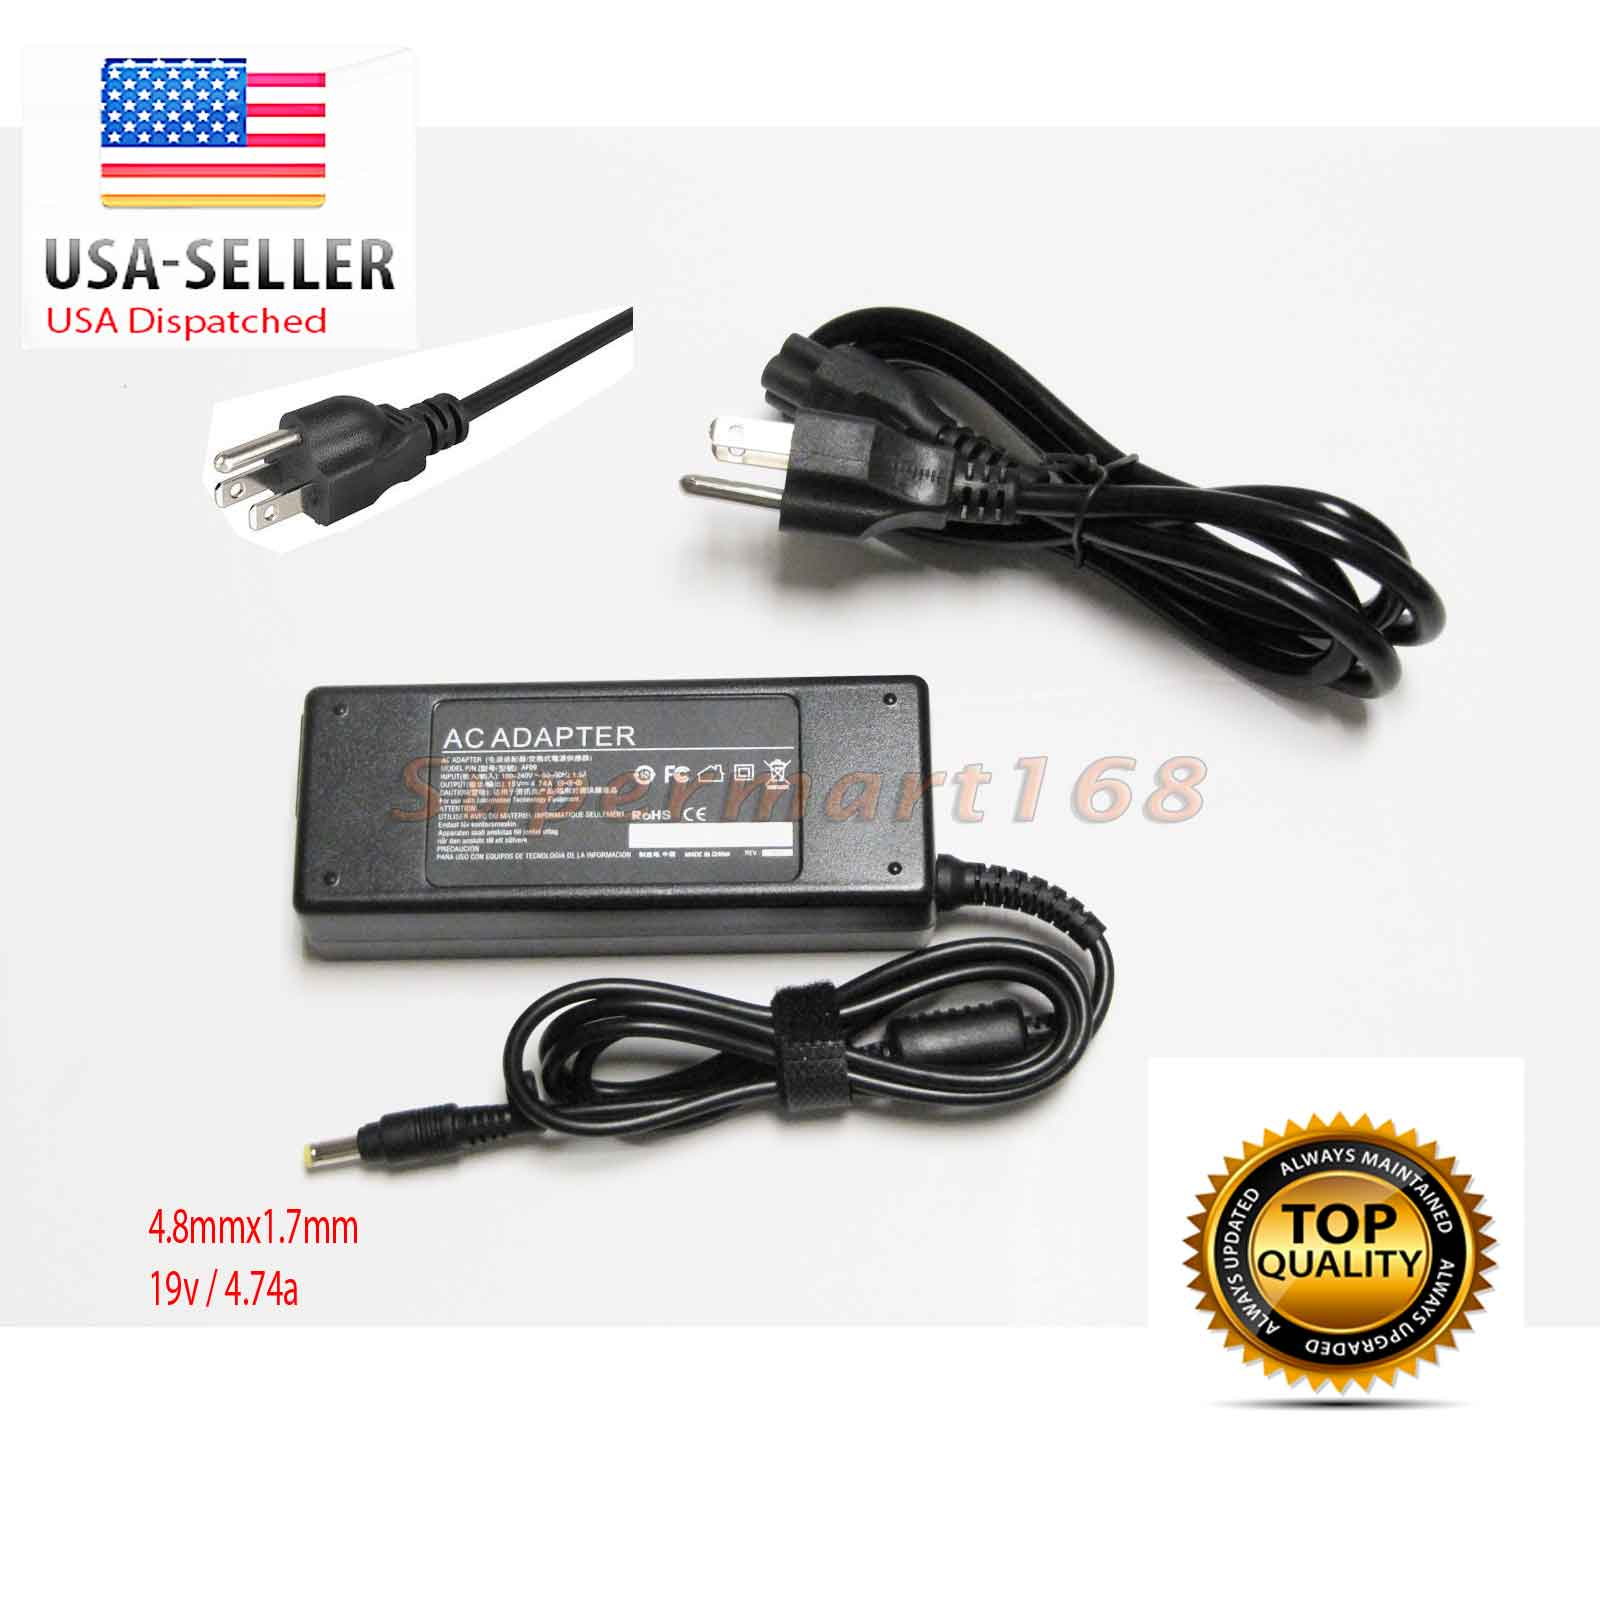 90w New Ac Adapter Charger Power Supply For Hp Pavilion Dv6000 Laptop Compaq Nc4000 Nc8000 Dv8000 Dv9000 Cord Plug Za 4817